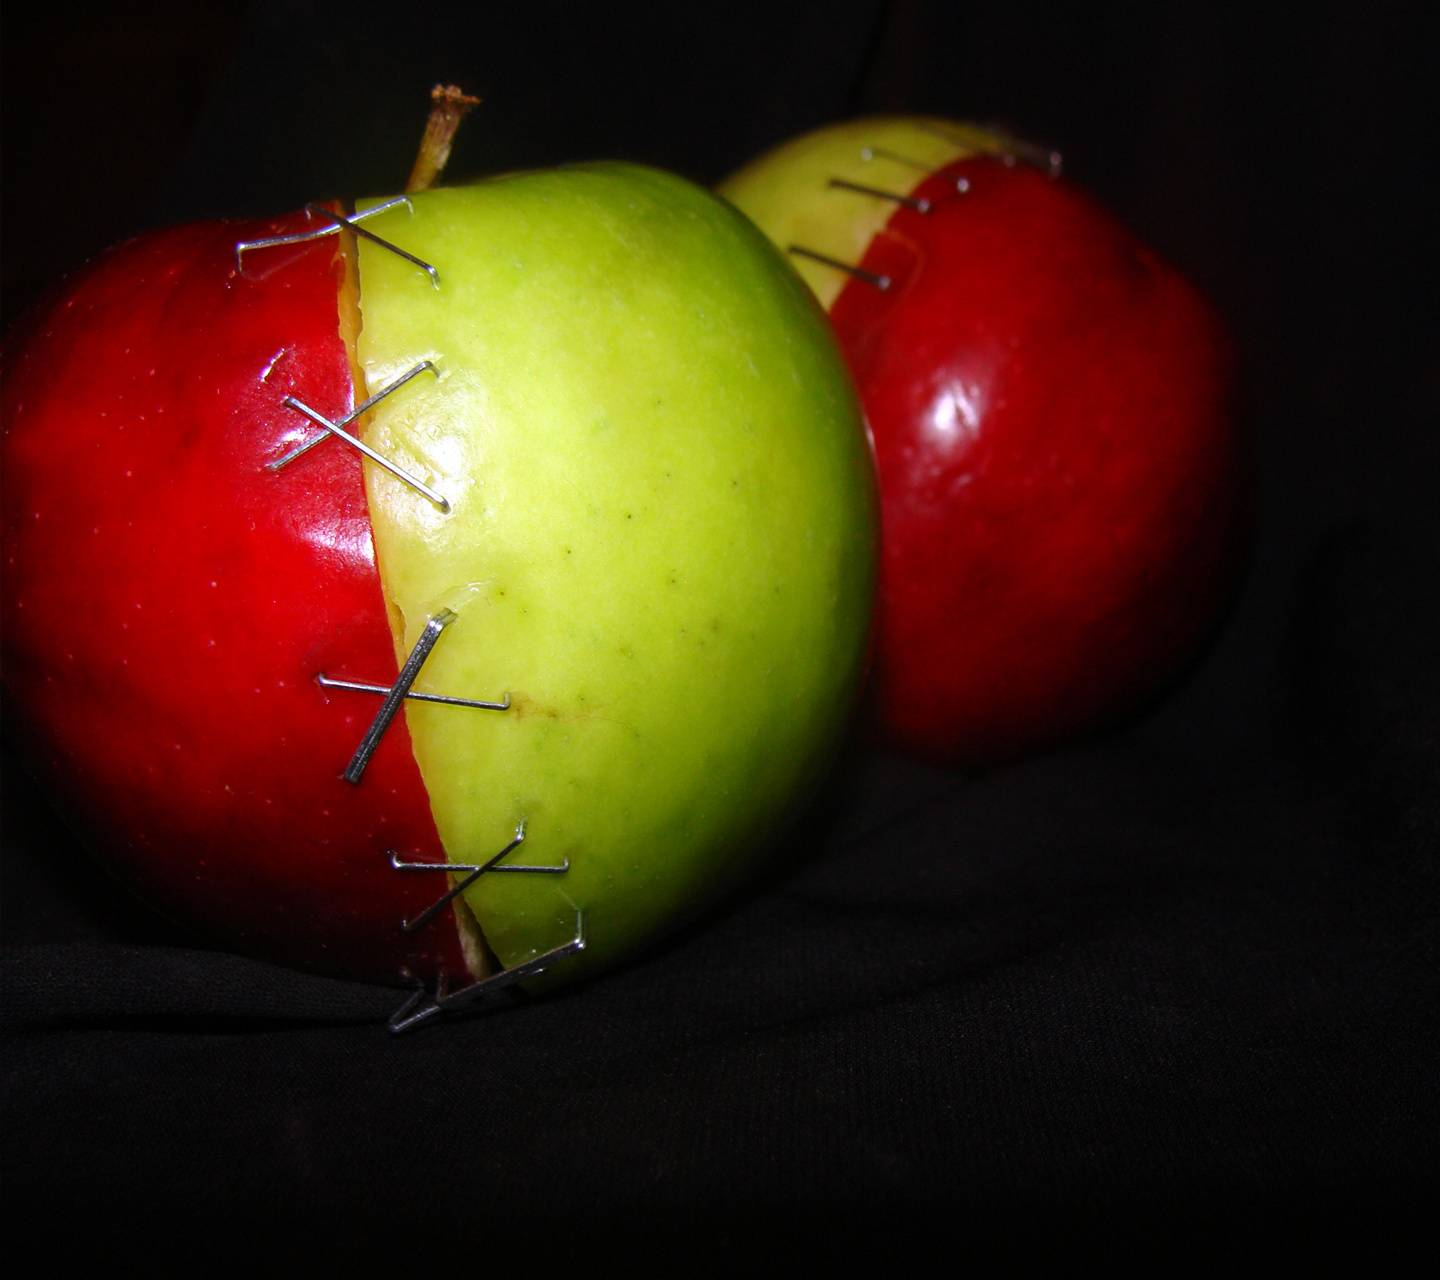 Scary Apple